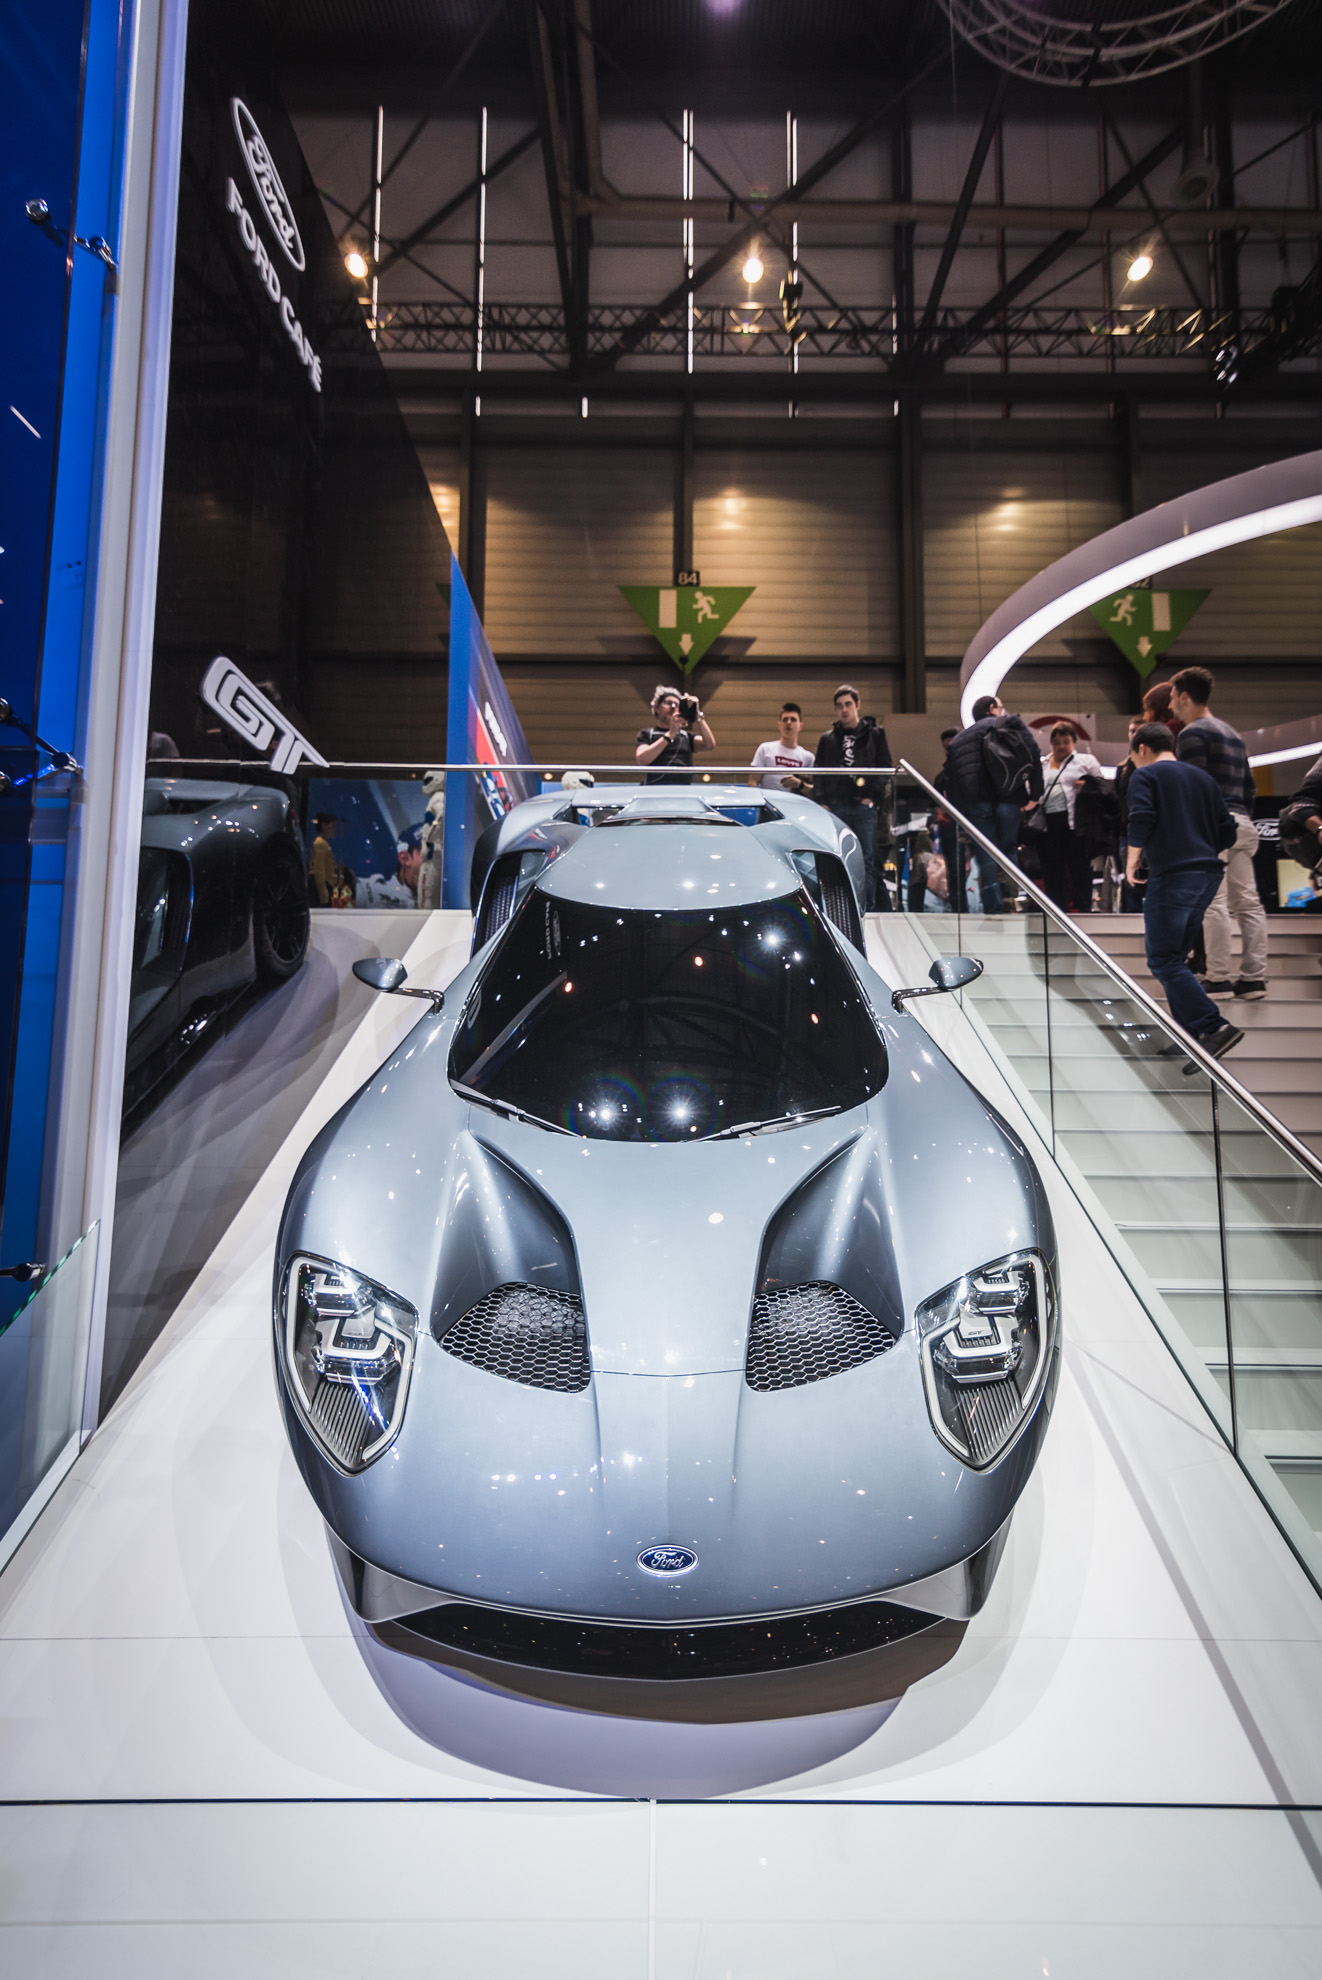 geneva-international-motor-show-igors-sinitsins-18